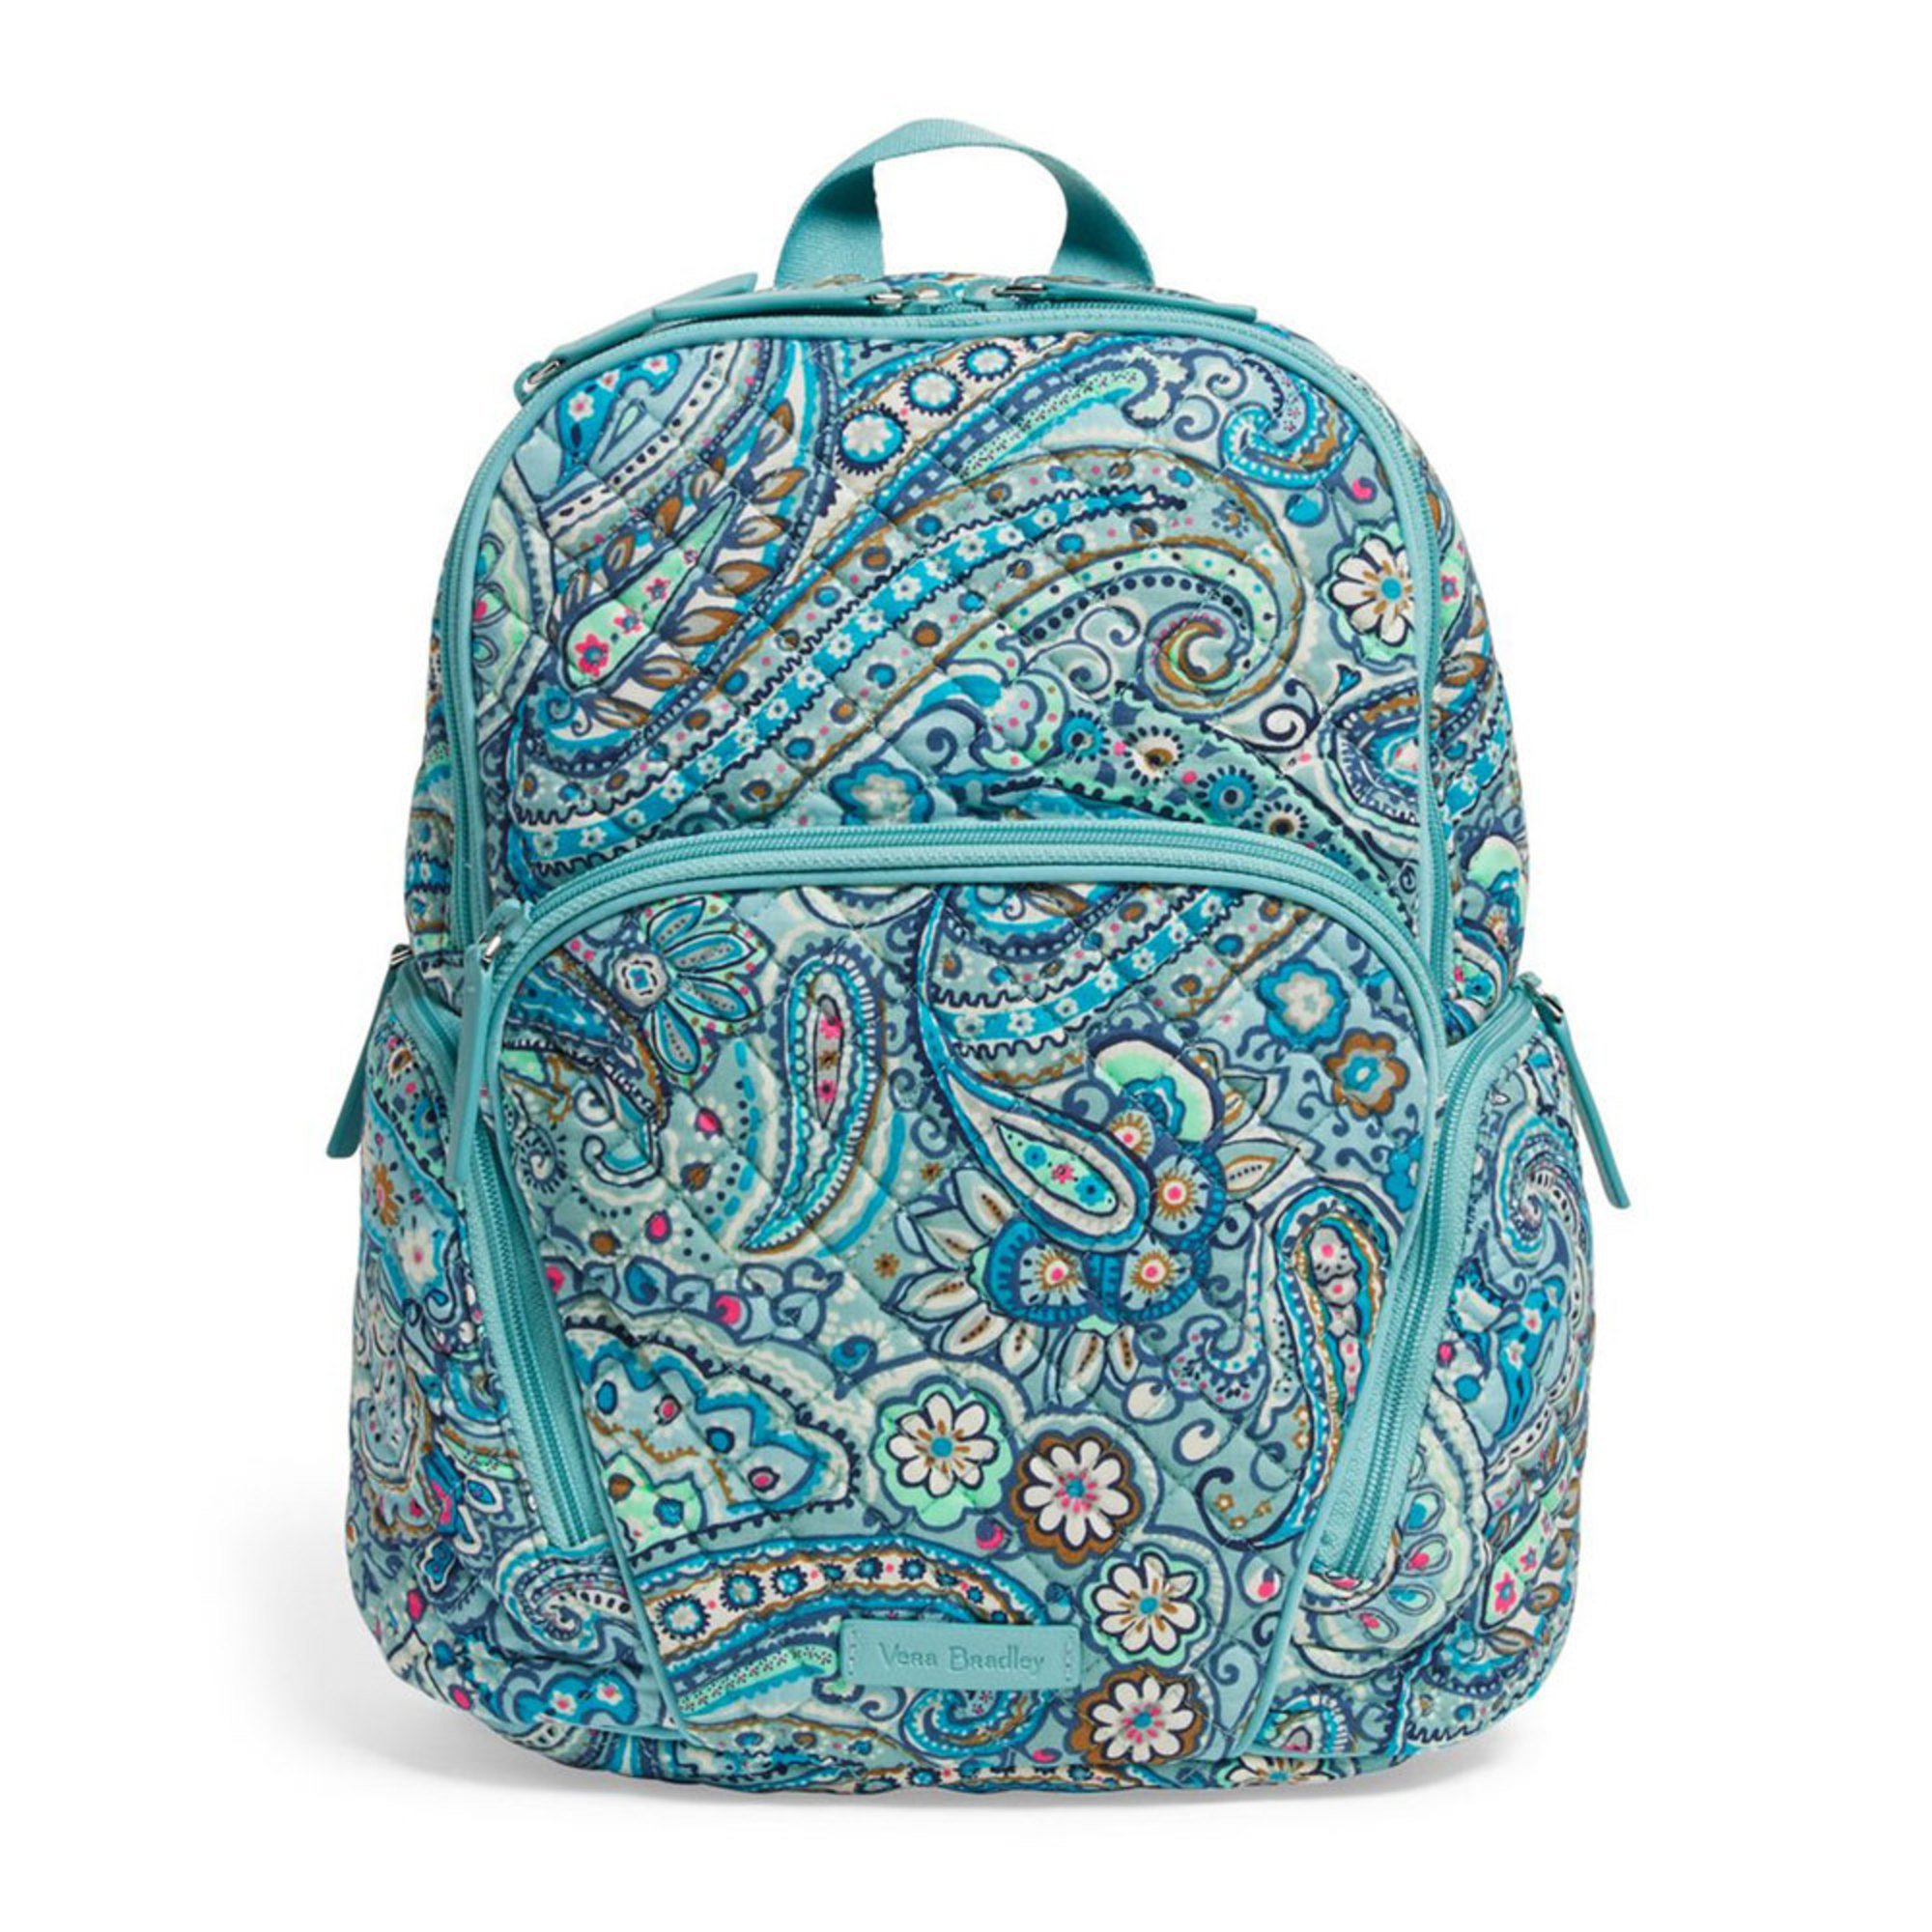 d2cb581f1 Vera Bradley Daisy Dot Paisley Hadley Backpack | Women's Backpacks ...